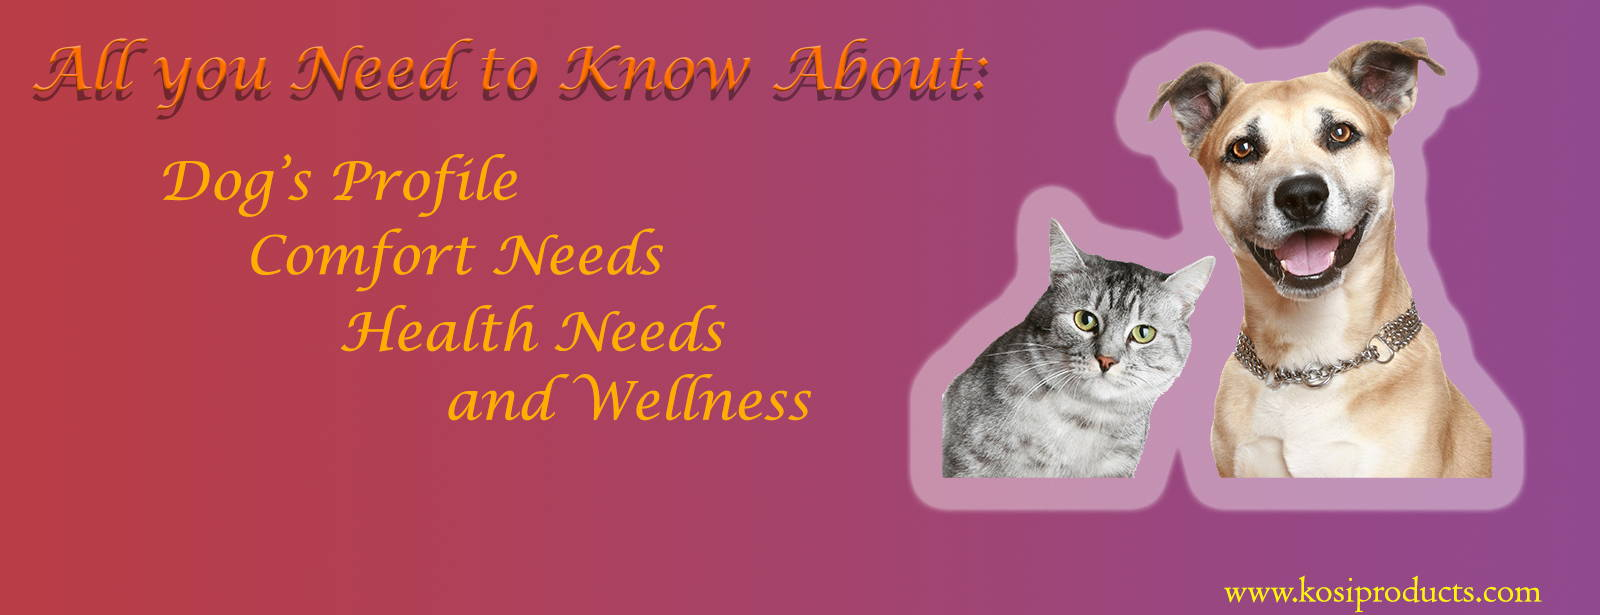 ALL-YOU-NEED-KNOW-ABOUT-DOGS-PROFILES-COMFORT-HEALTH-WELLNESS-NEEDS